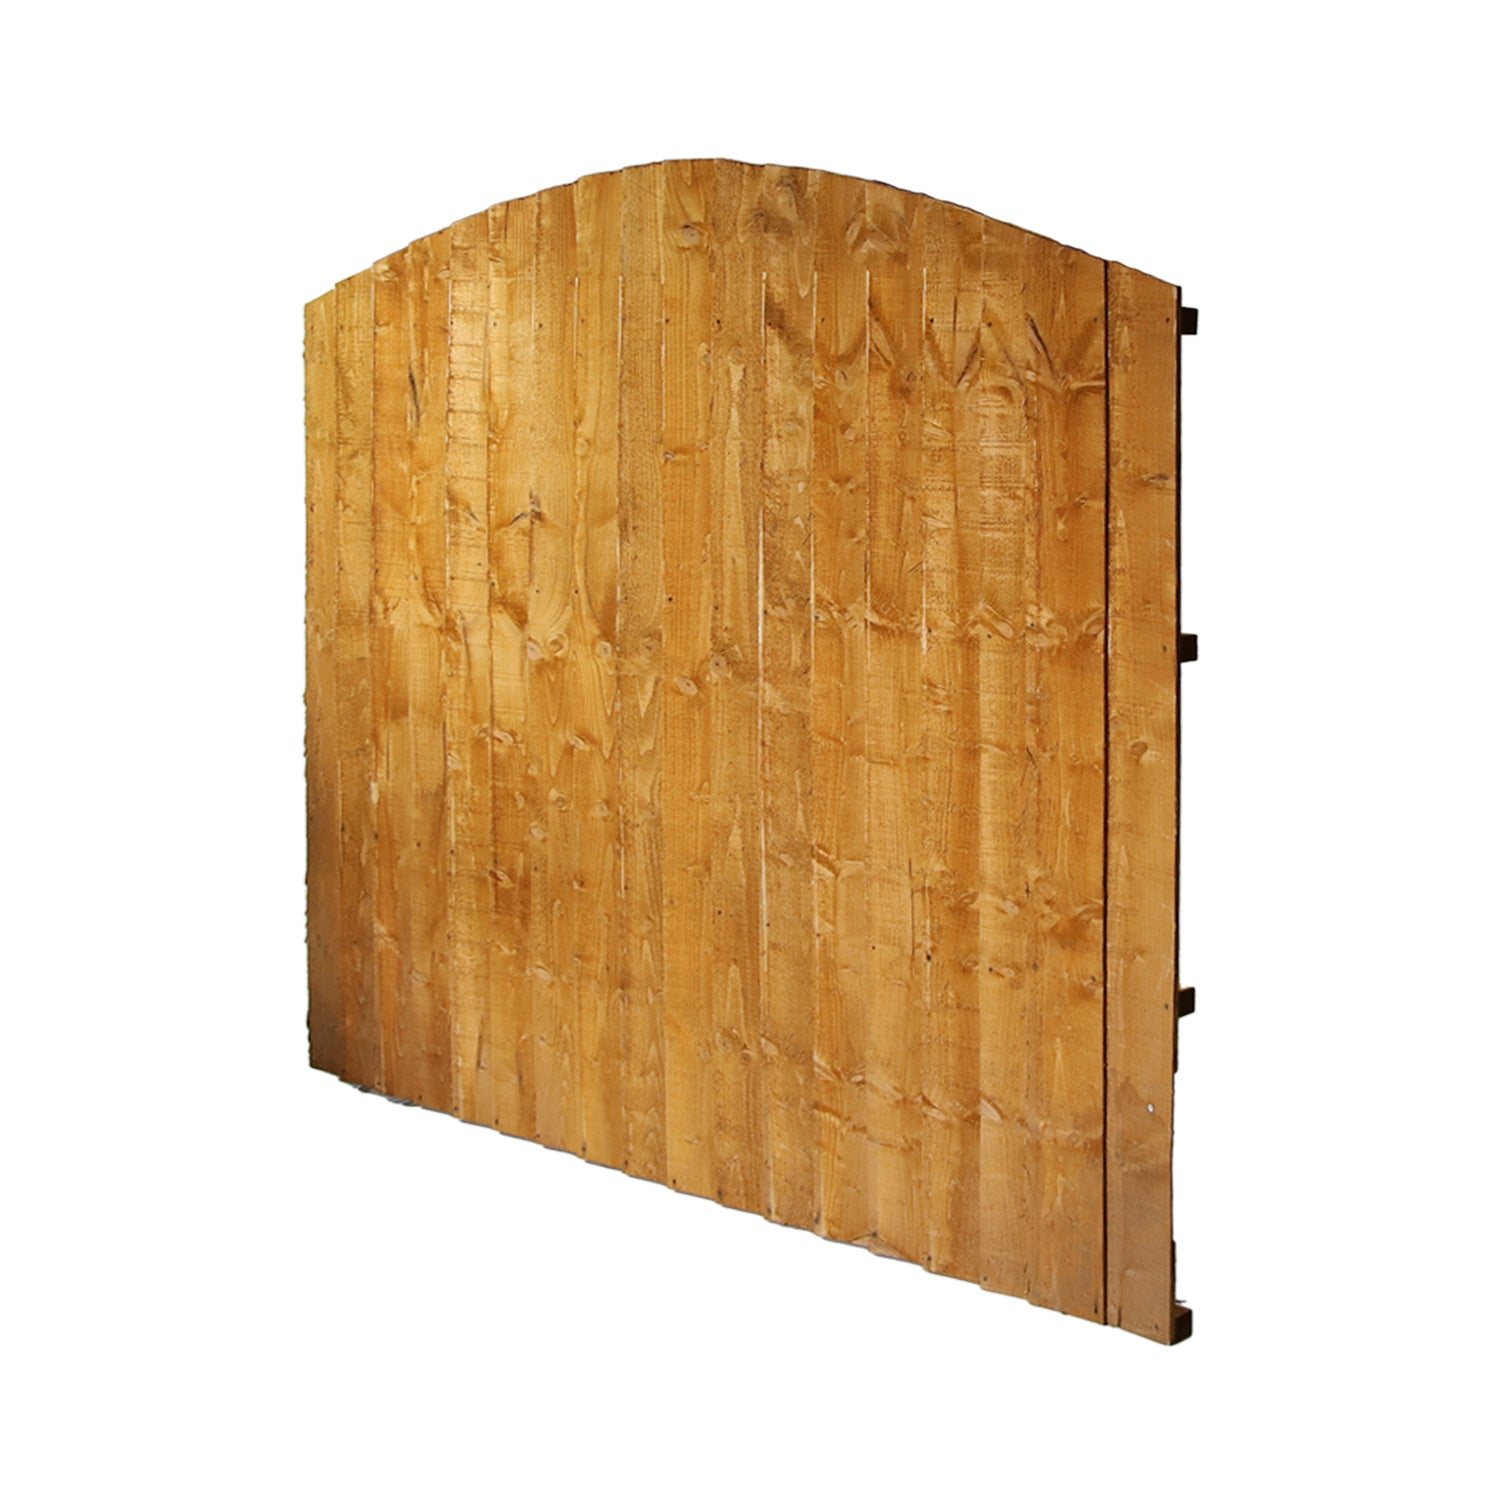 6' x 5' + Dome Featheredge Fence Panel